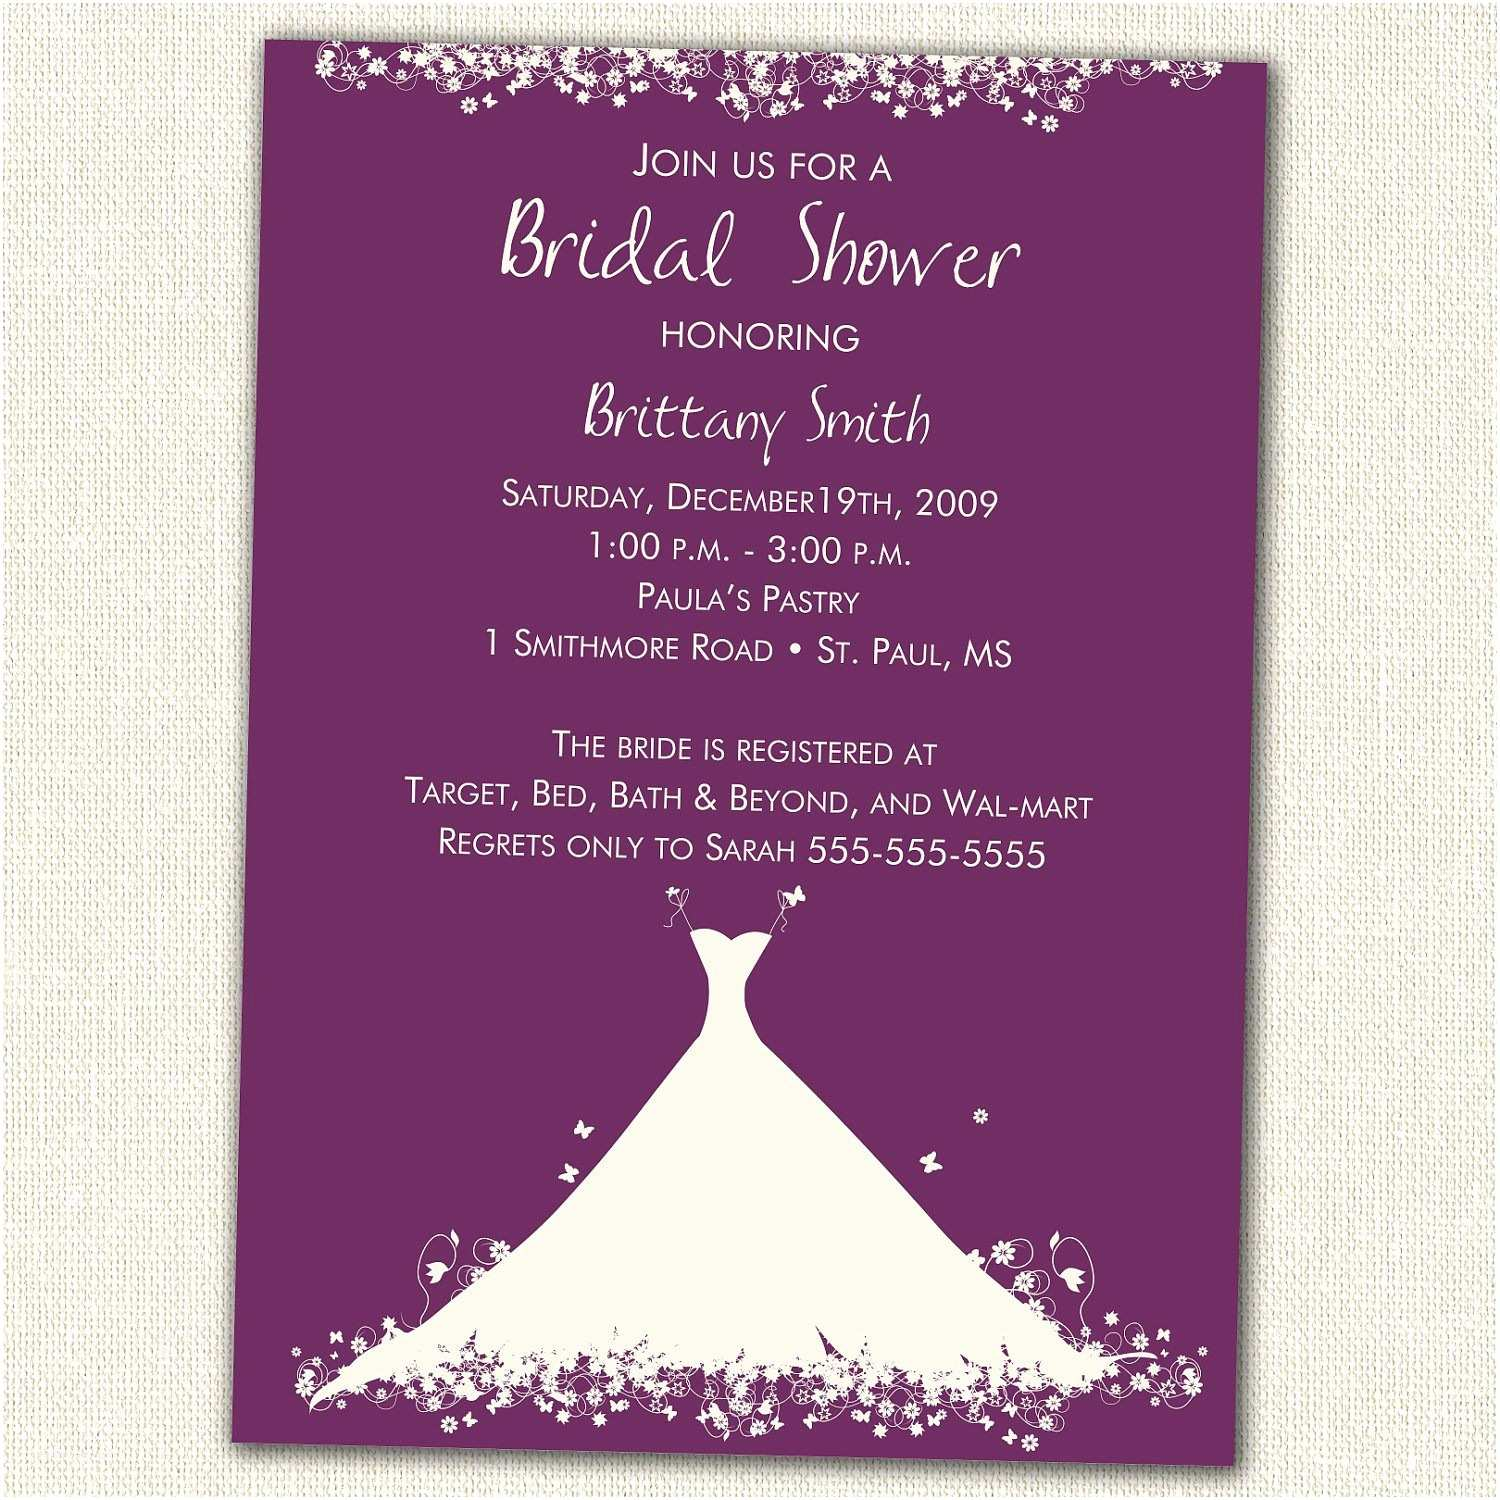 Vistaprint Wedding Shower Invitations Vista Print Wedding Shower Invitations